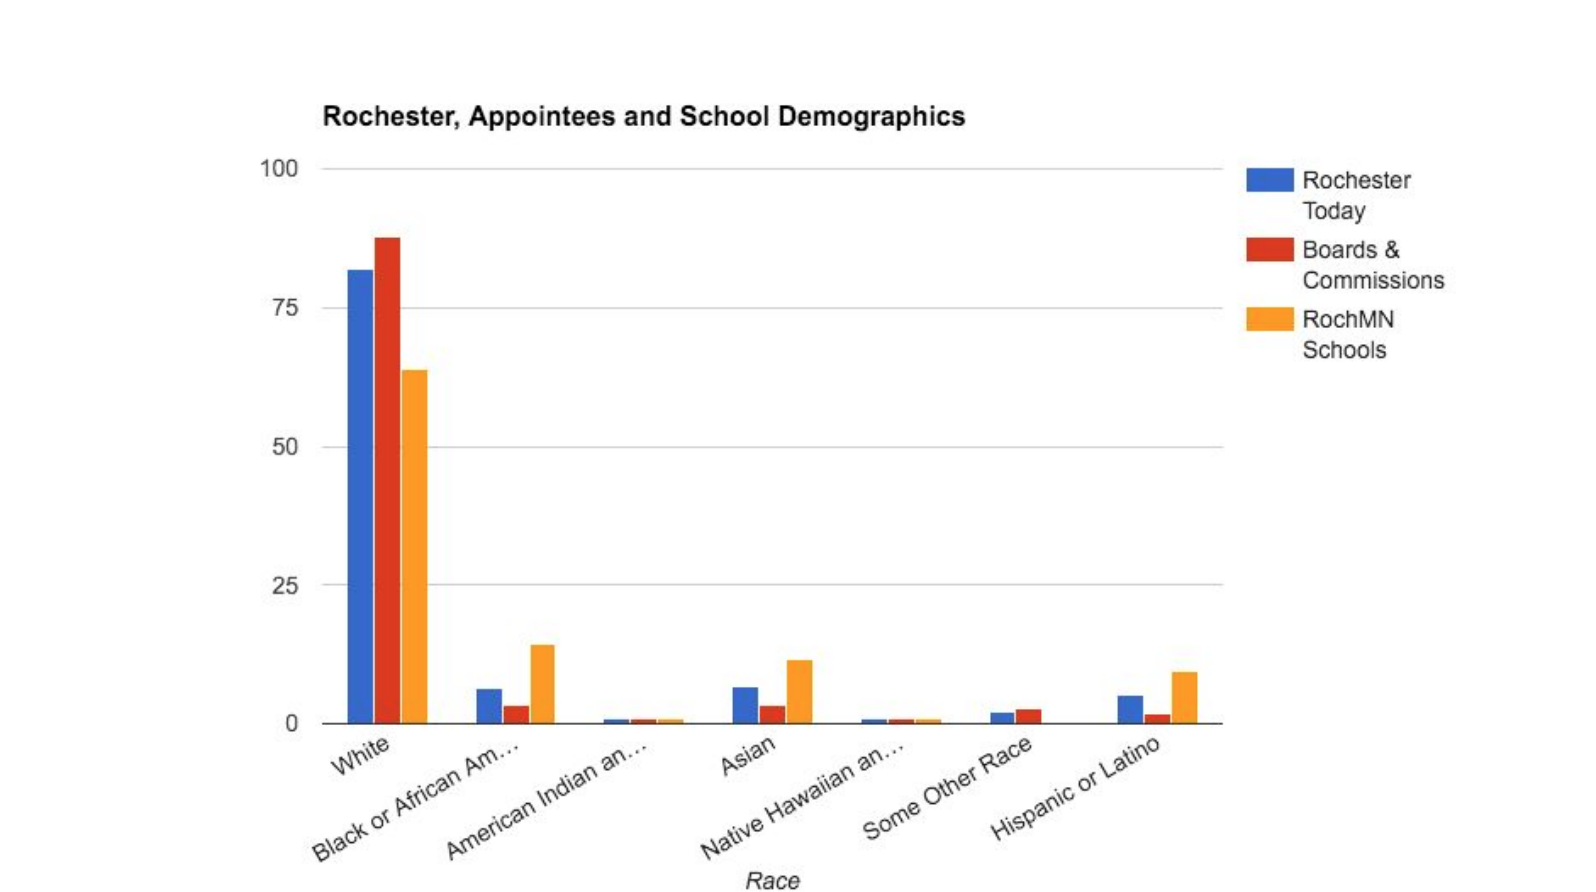 Data from the 2010 census (blue) compared to a 2015 self-reporting survey of Rochester boards and commissions (red) and 2016 enrollment data from the Rochester Public School District (orange). Chart courtesy of Nick Campion.